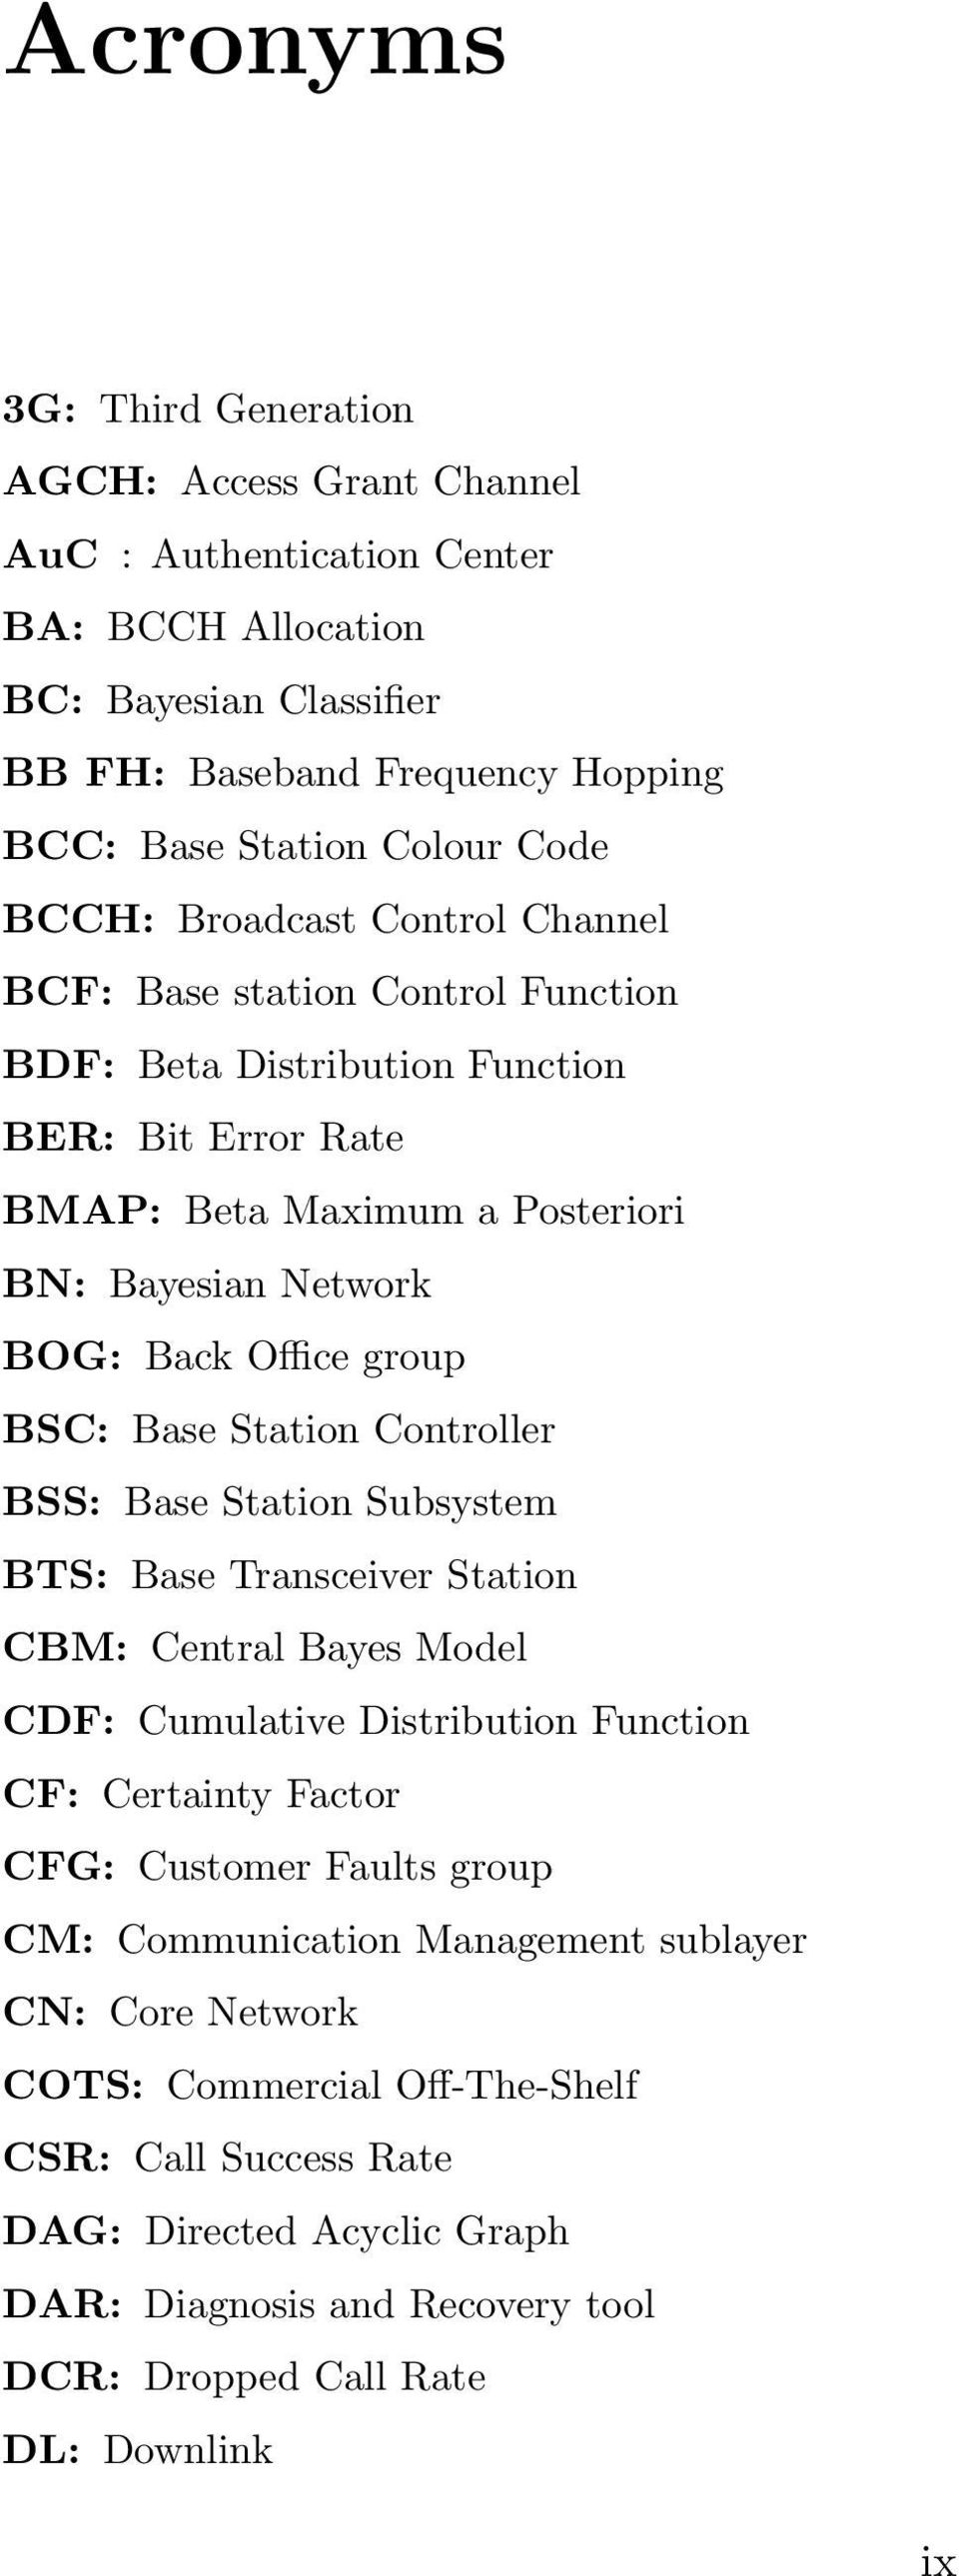 Station Controller BSS: Base Station Subsystem BTS: Base Transceiver Station CBM: Central Bayes Model CDF: Cumulative Distribution Function CF: Certainty Factor CFG: Customer Faults group CM: